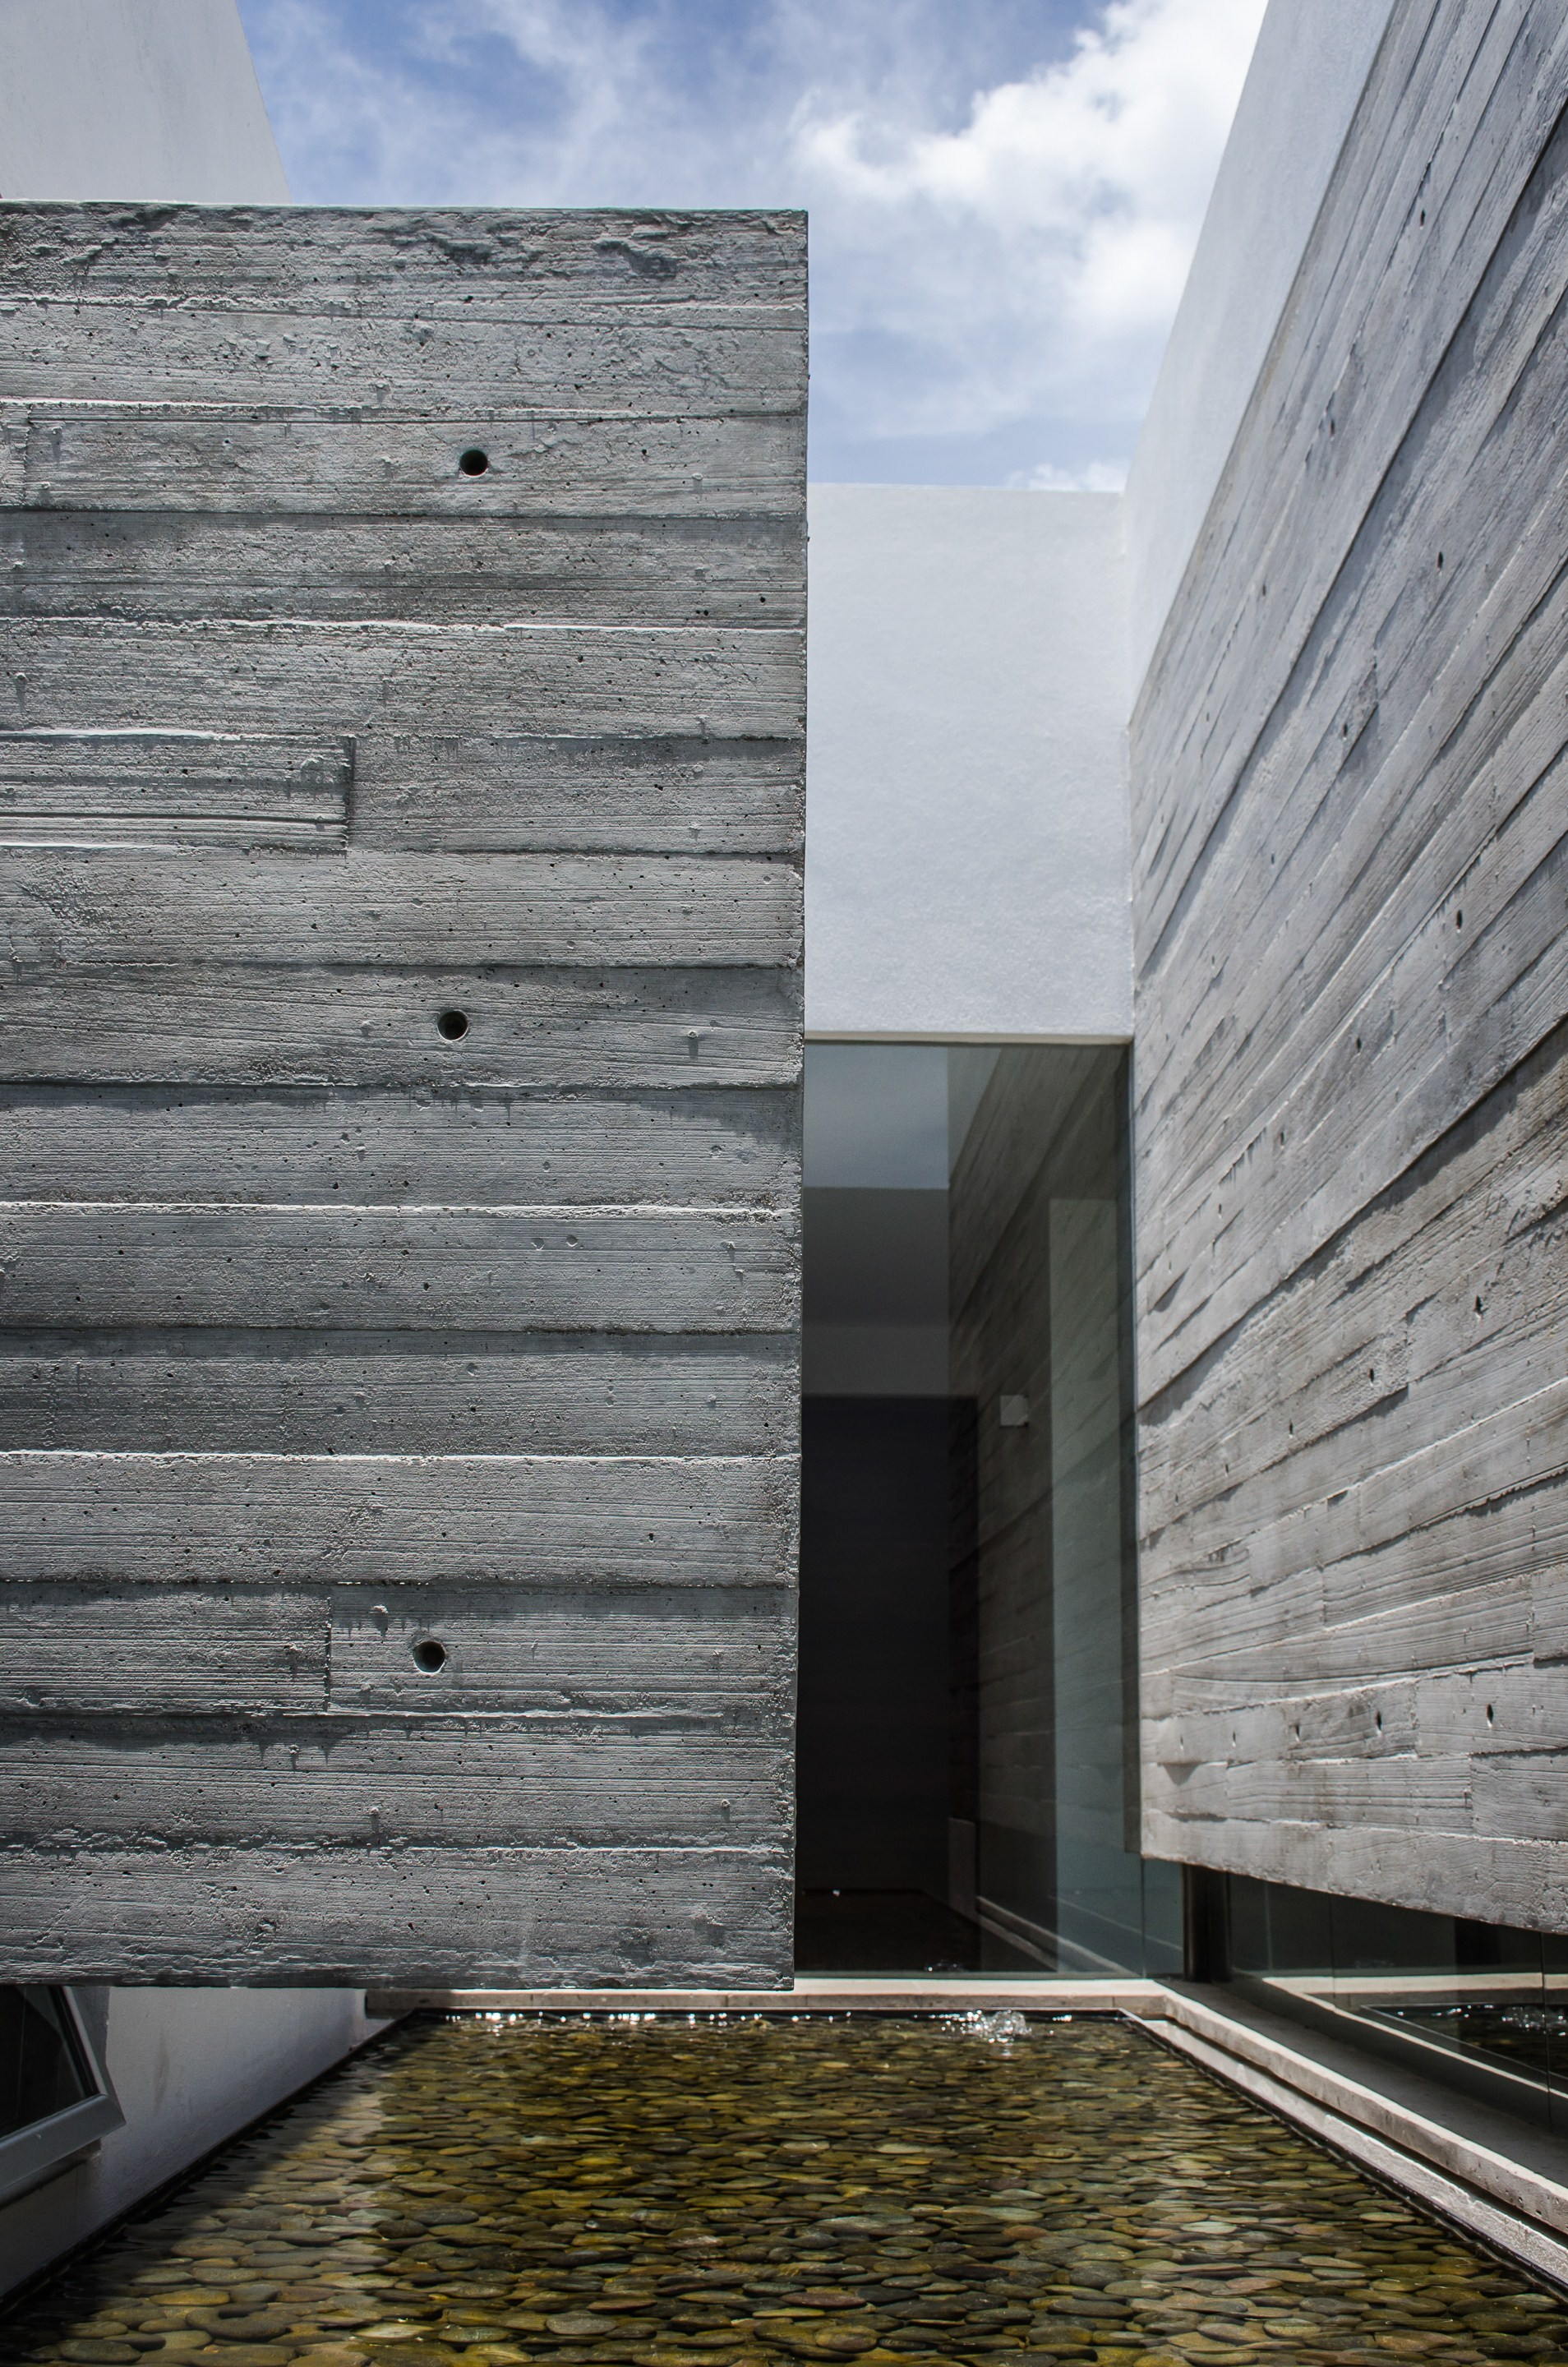 Gallery of t02 adi arquitectura y dise o interior 28 for Adi arquitectura y diseno interior